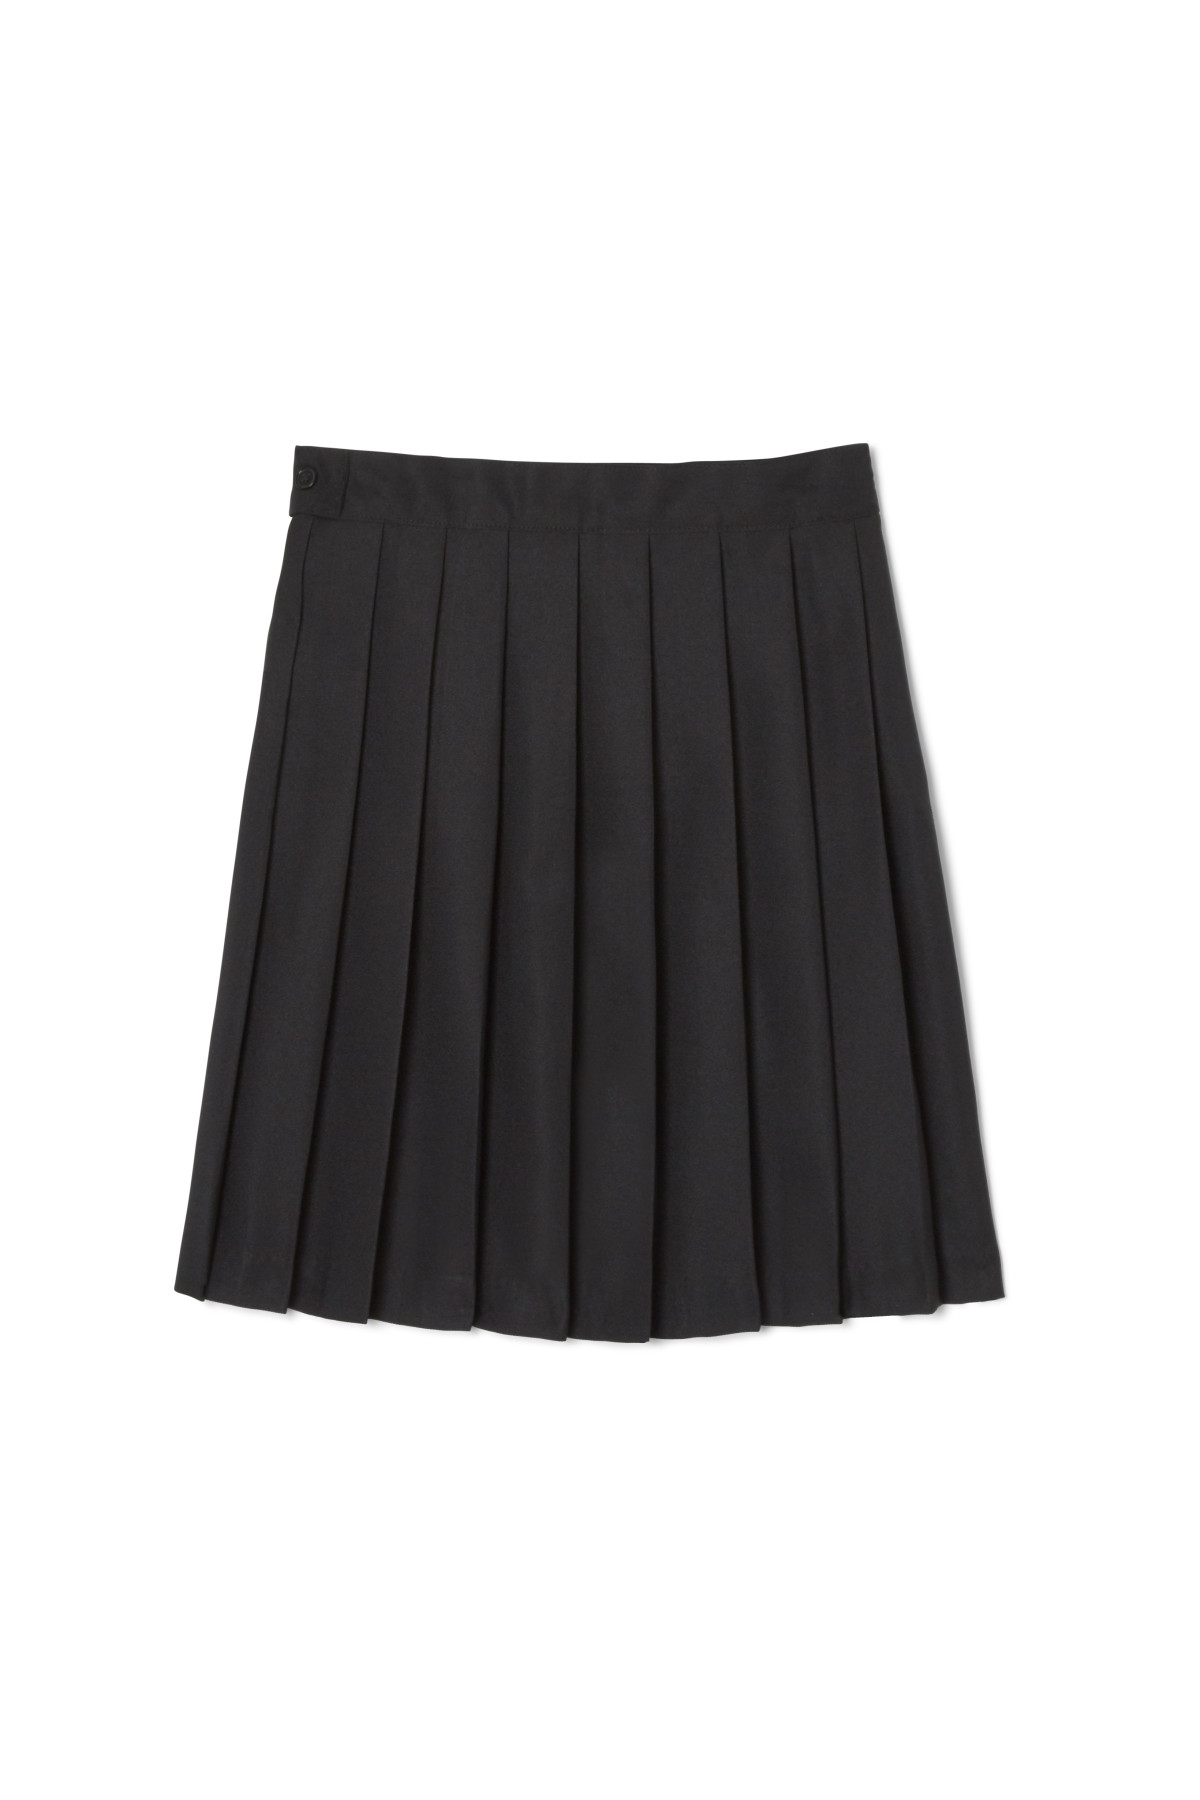 6474dabb19 Skirts & Scooters - Girls School Uniforms | French Toast - French Toast